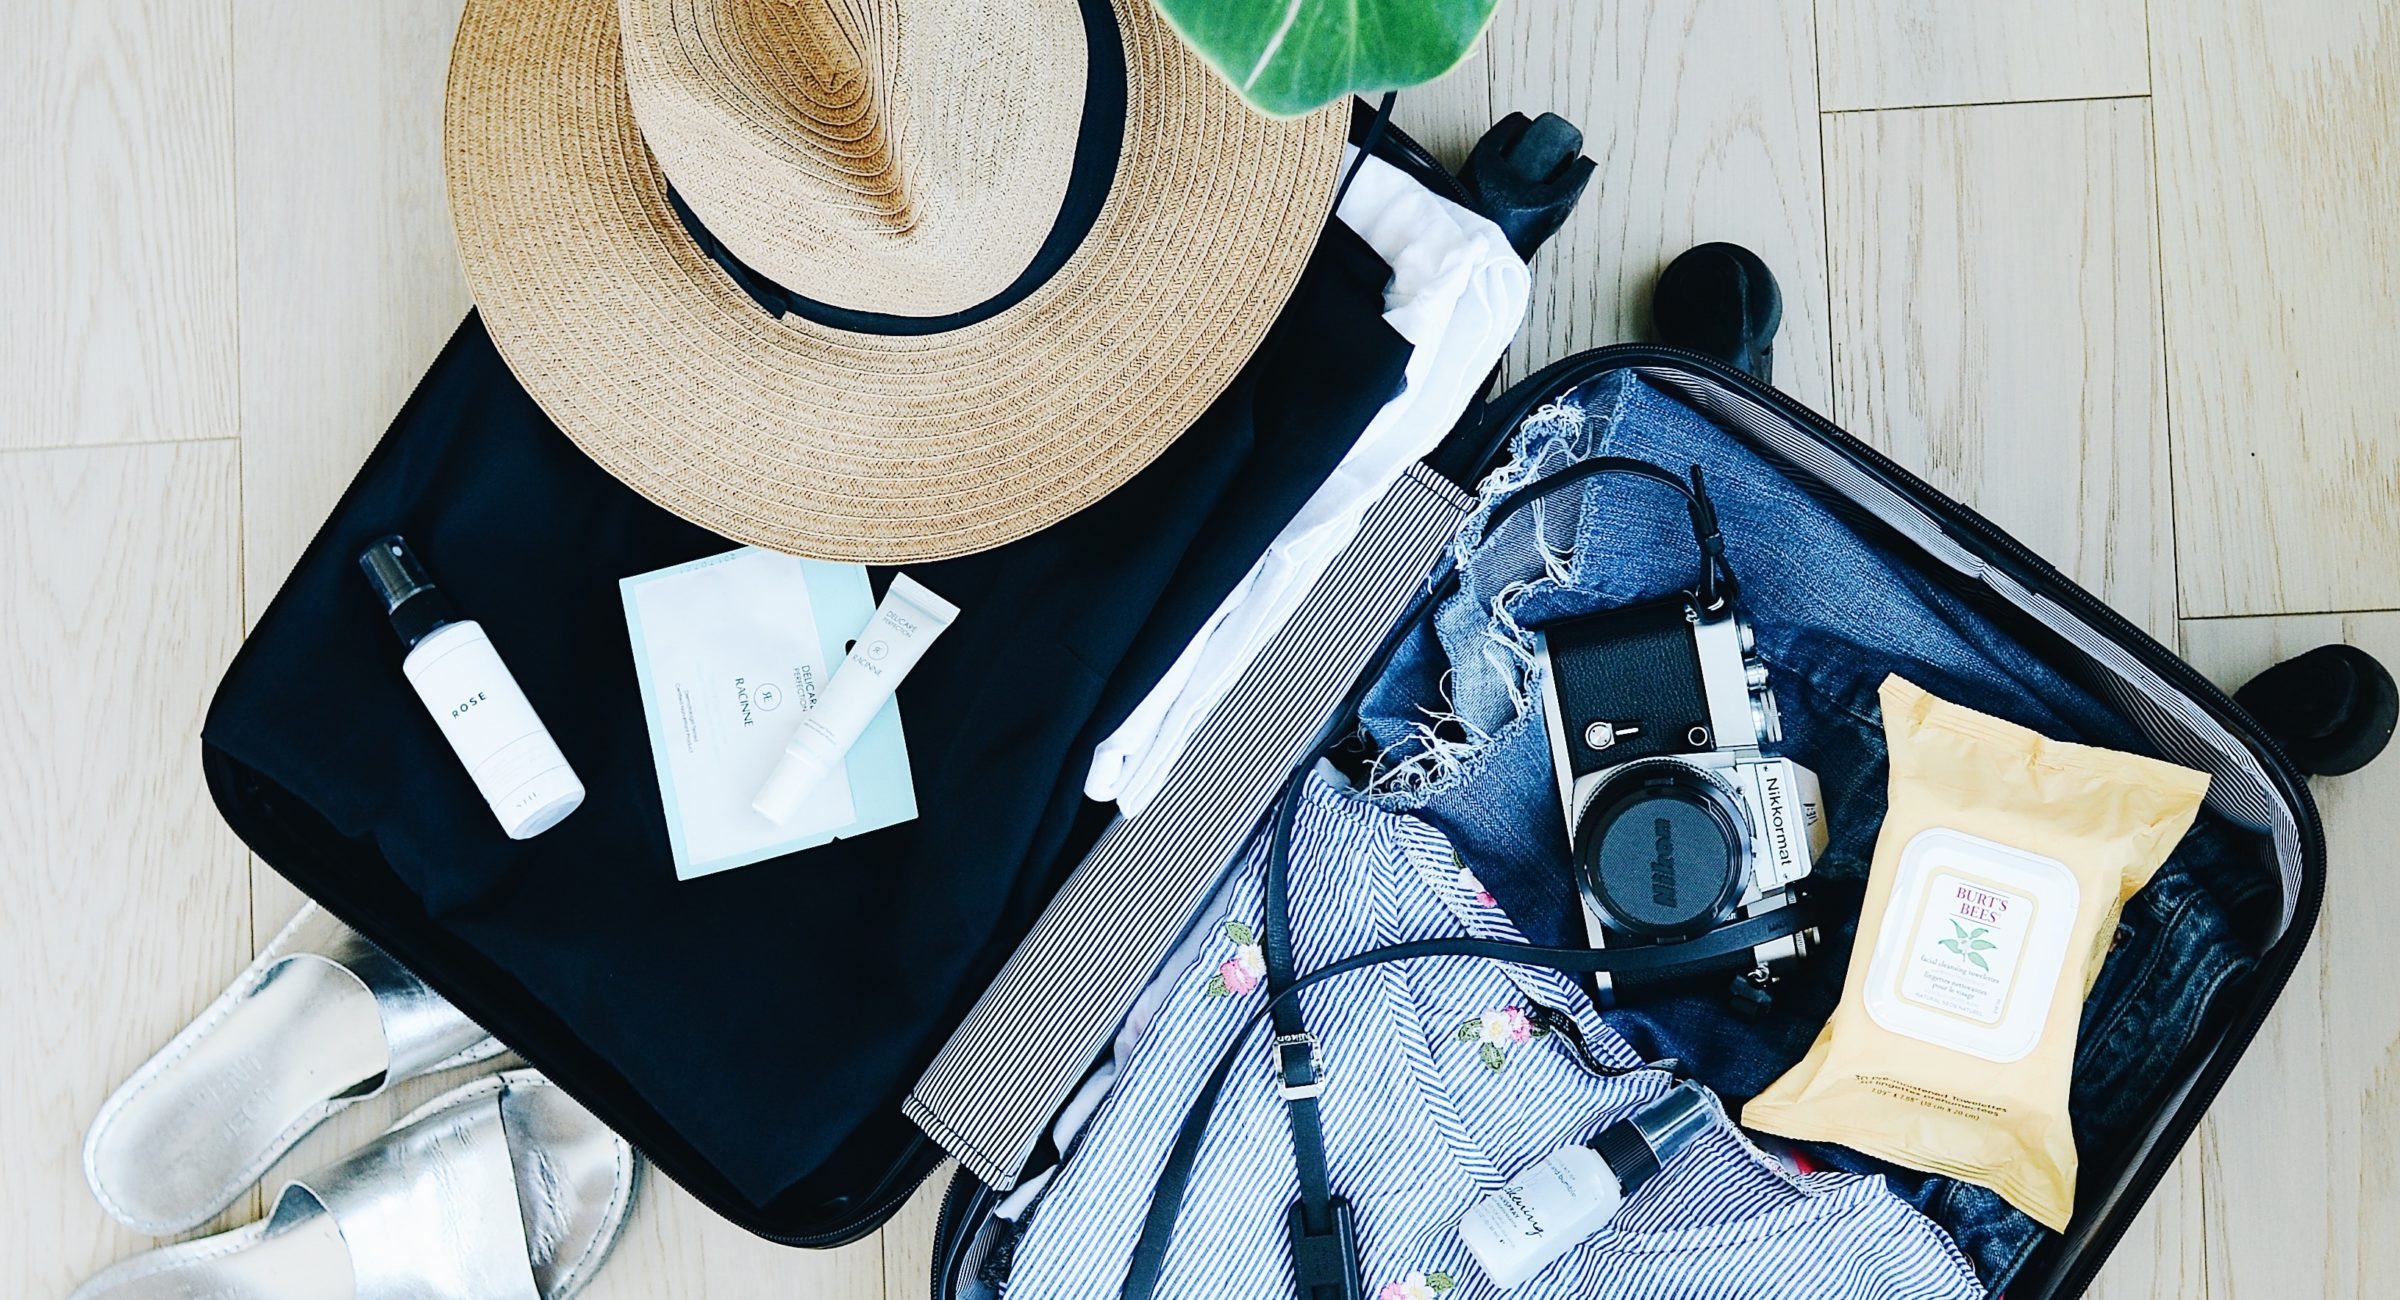 How to plan a trip? Pack